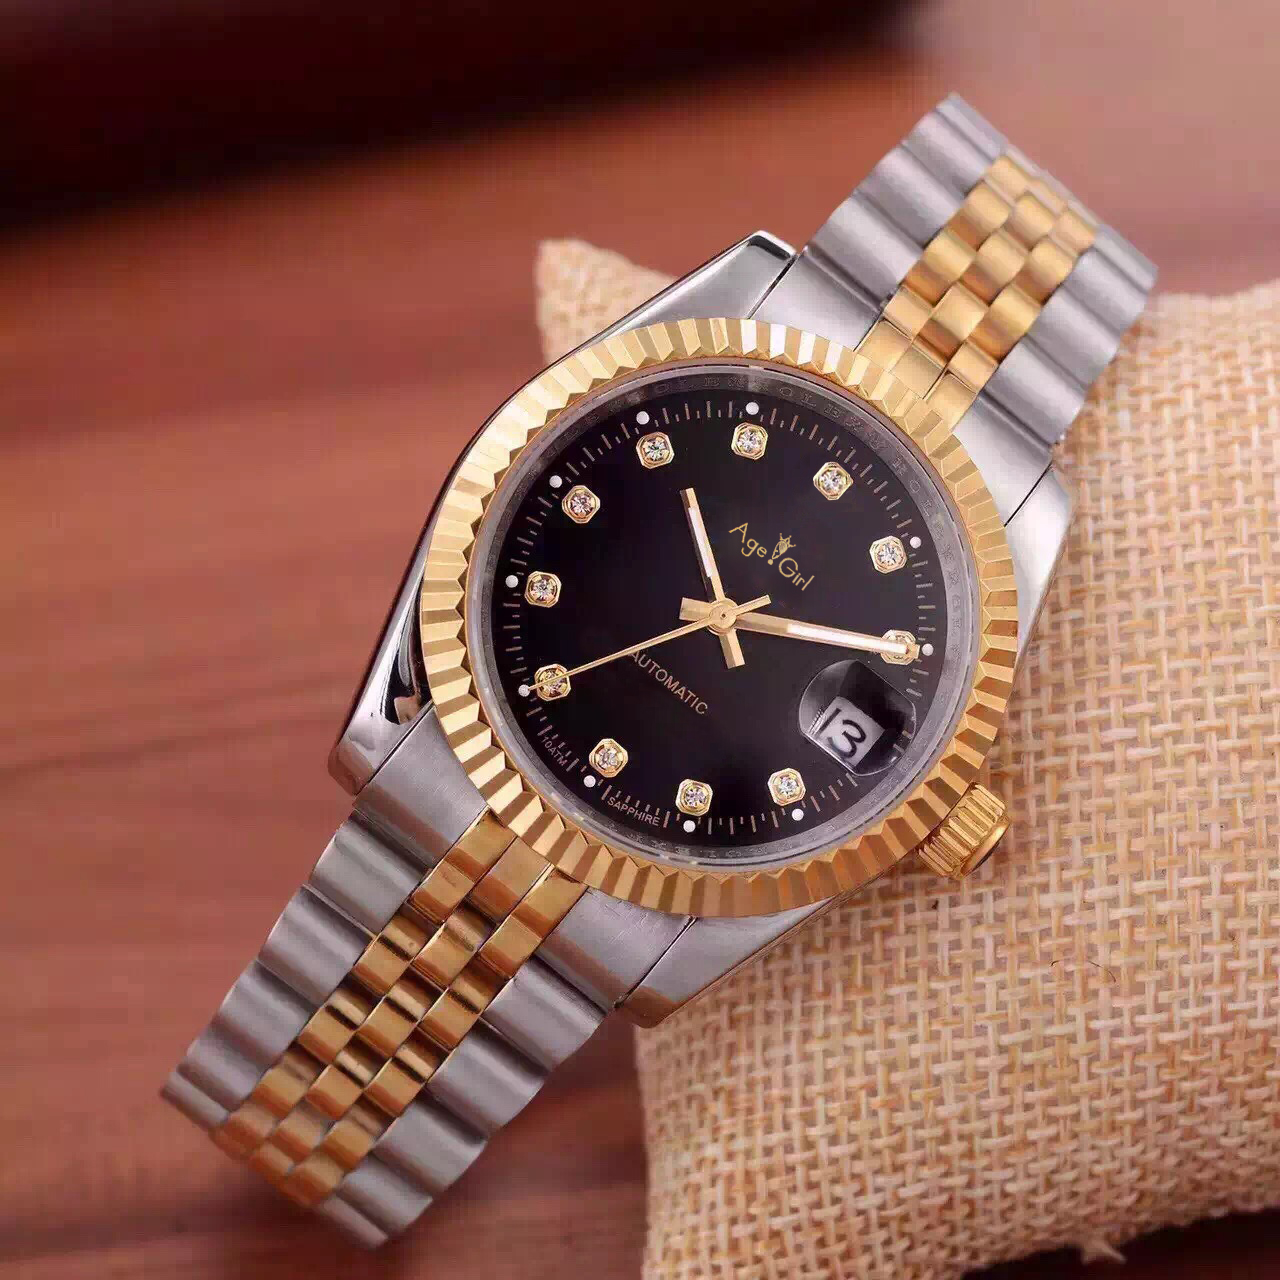 Luxury Brand New Stainless Steel Sapphire Waterproof Watches Men Automatic Mechanical Diamonds Silver Gold 36mm Datejust ETA8215Luxury Brand New Stainless Steel Sapphire Waterproof Watches Men Automatic Mechanical Diamonds Silver Gold 36mm Datejust ETA8215